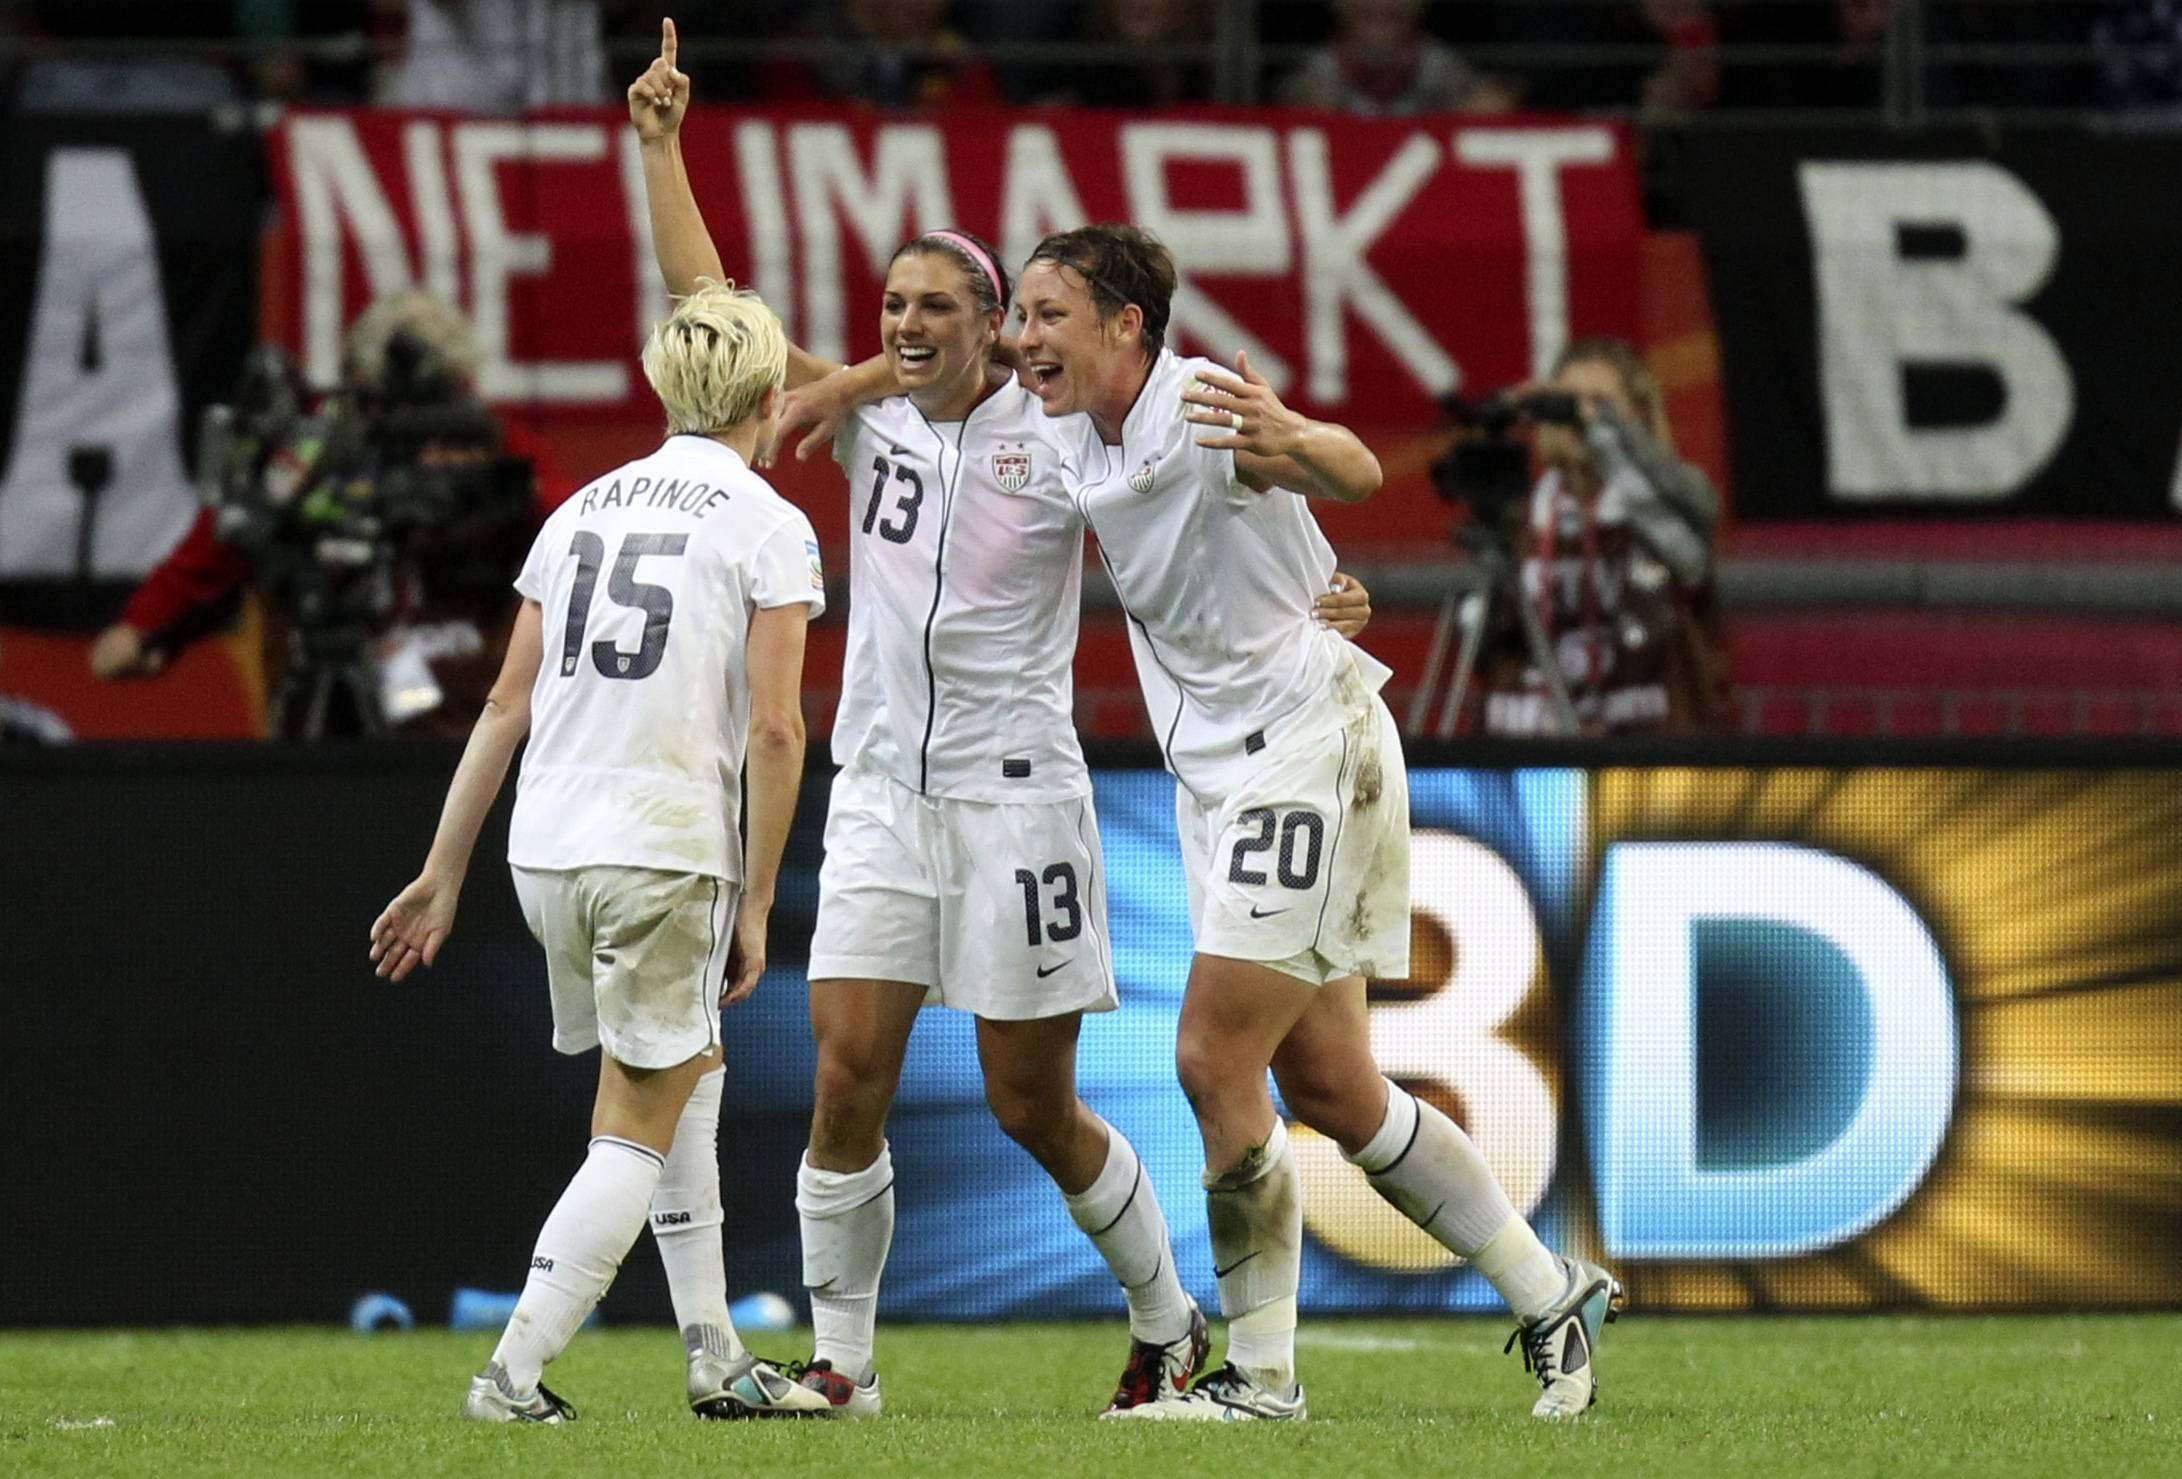 Alex Morgan, center, celebrates with Abby Wambach and Megan Rapinoe, left, after scoring the opening goal during World Cup final Sunday.